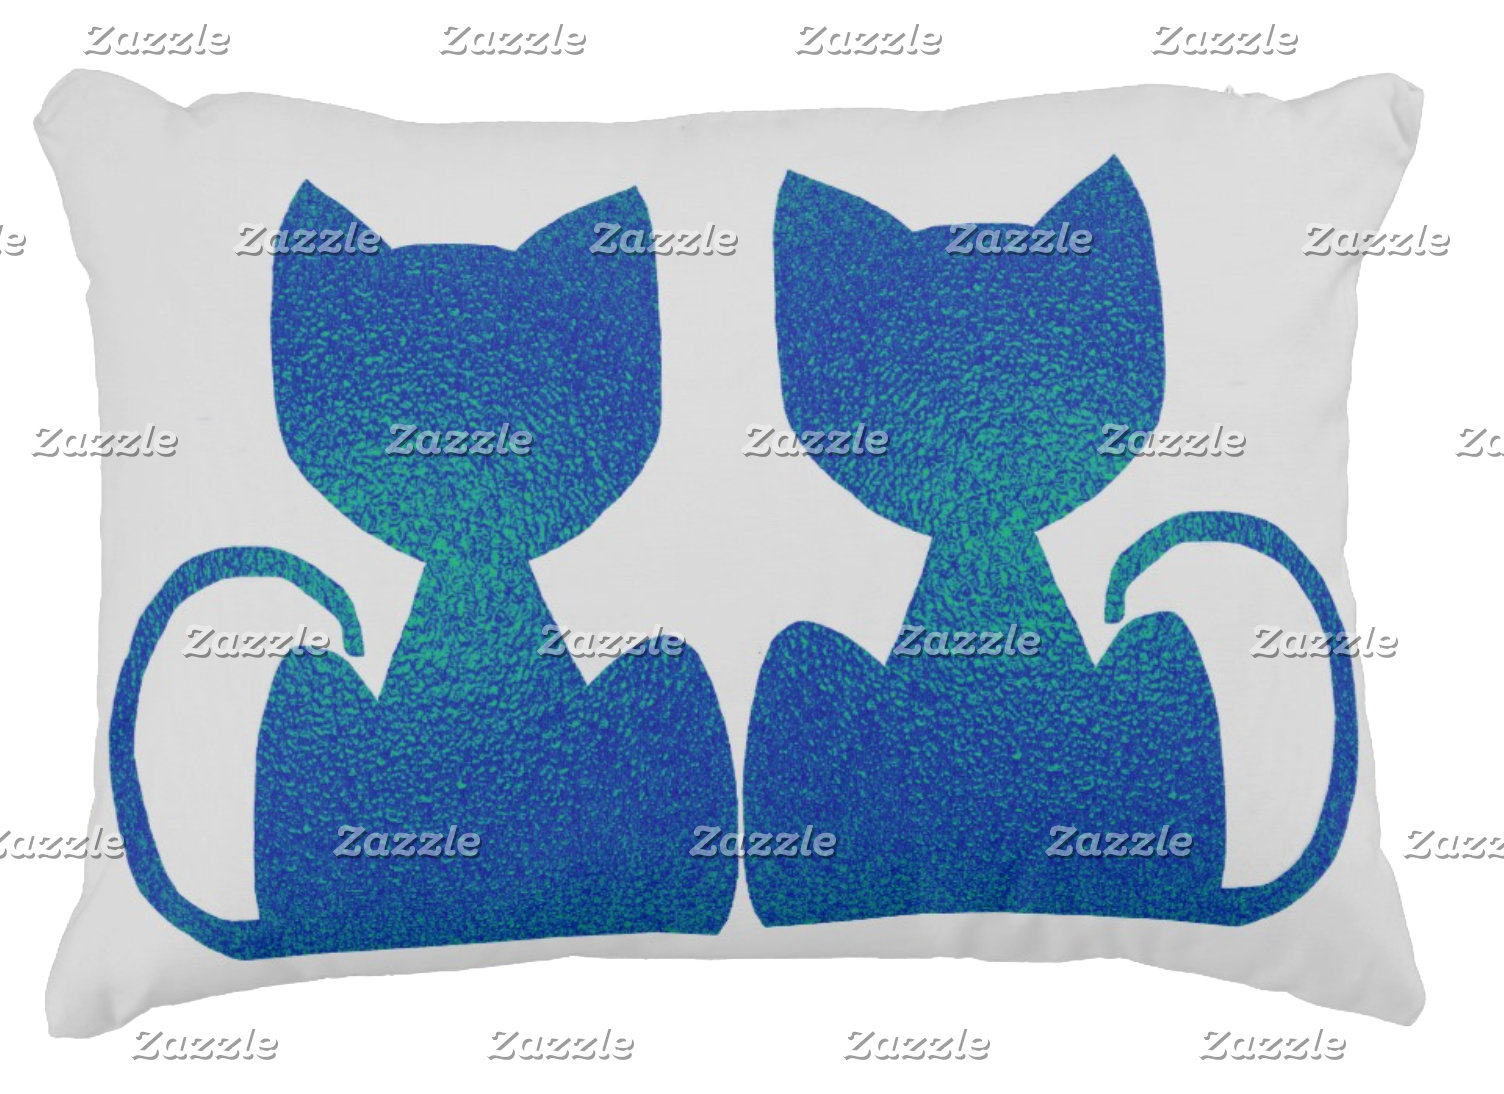 CrystalKatz Pillows